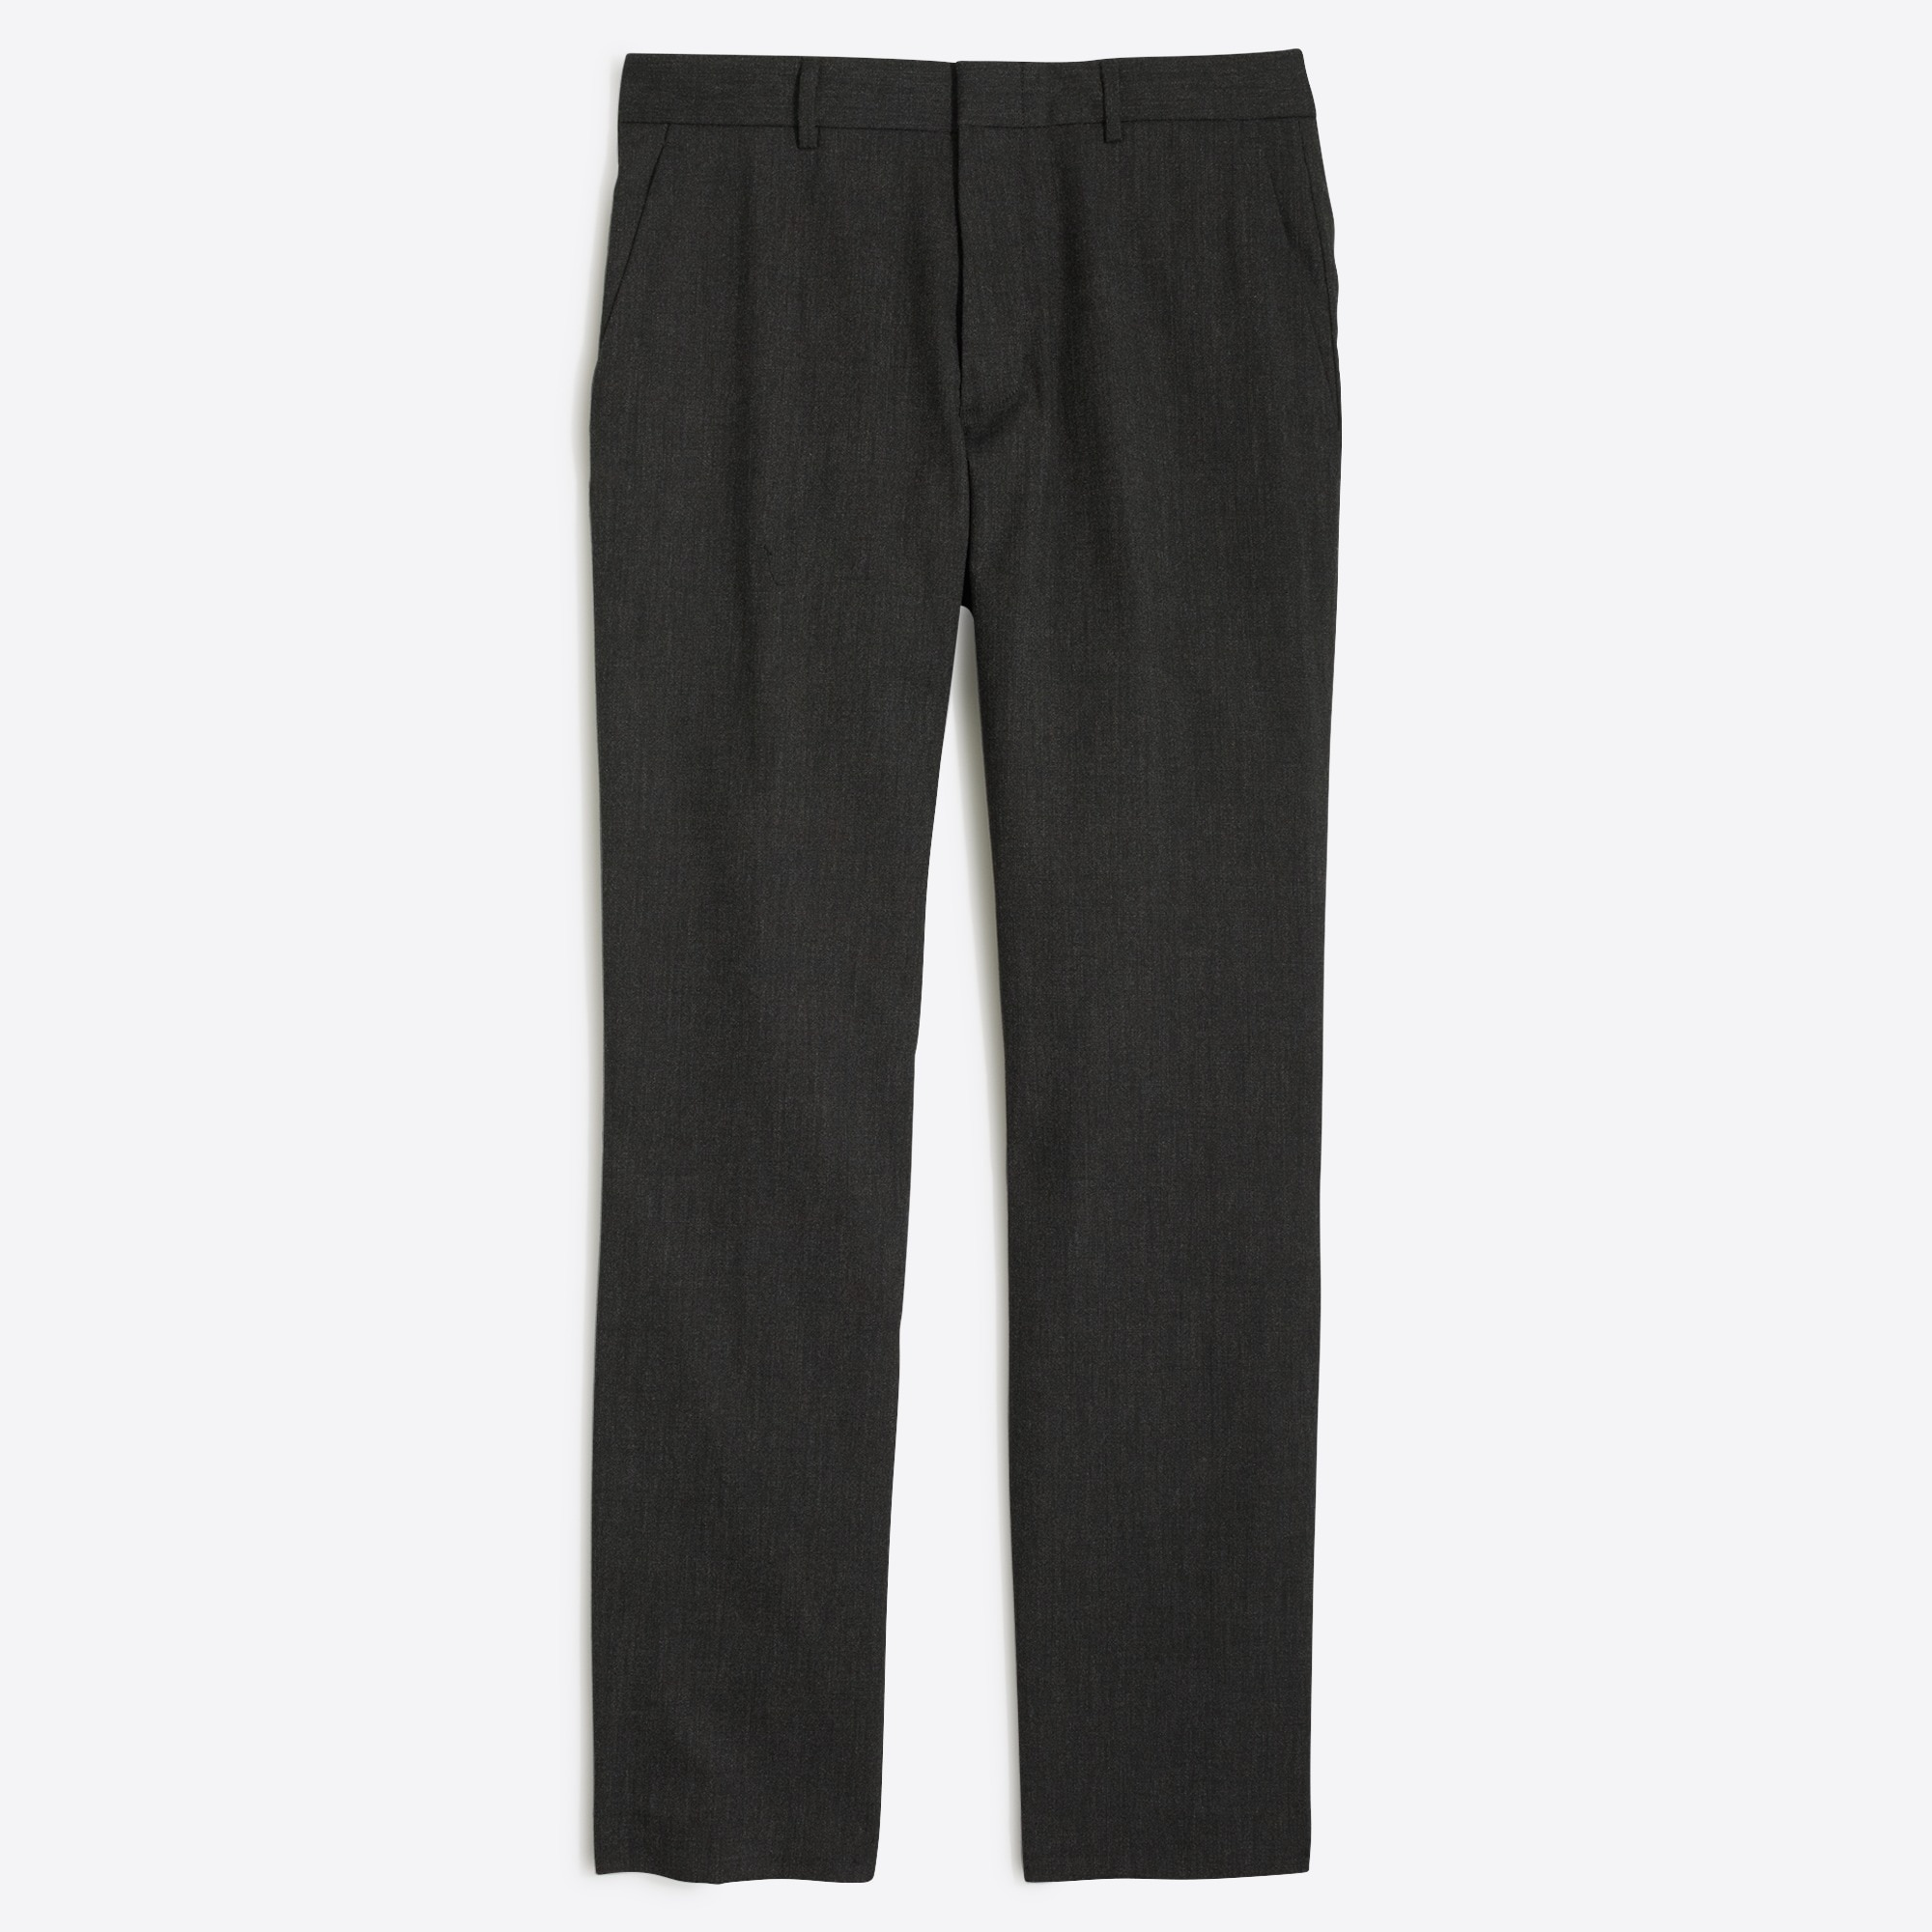 Image 2 for Slim Thompson suit pant in flex wool